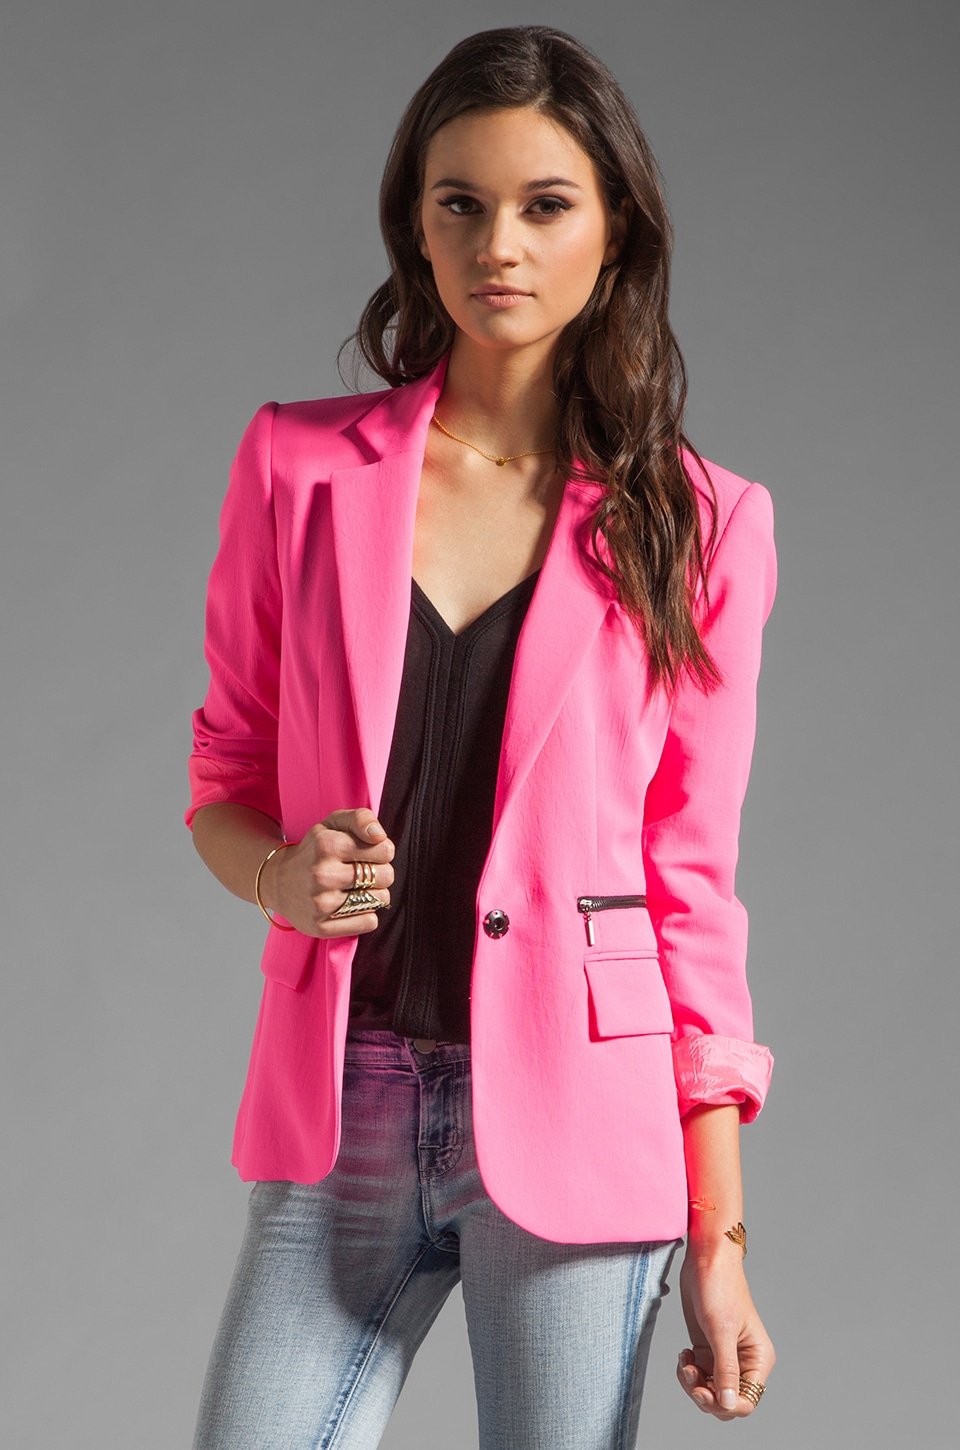 Nanette Lepore Superstar Crepe Blazer in Shocking Pink